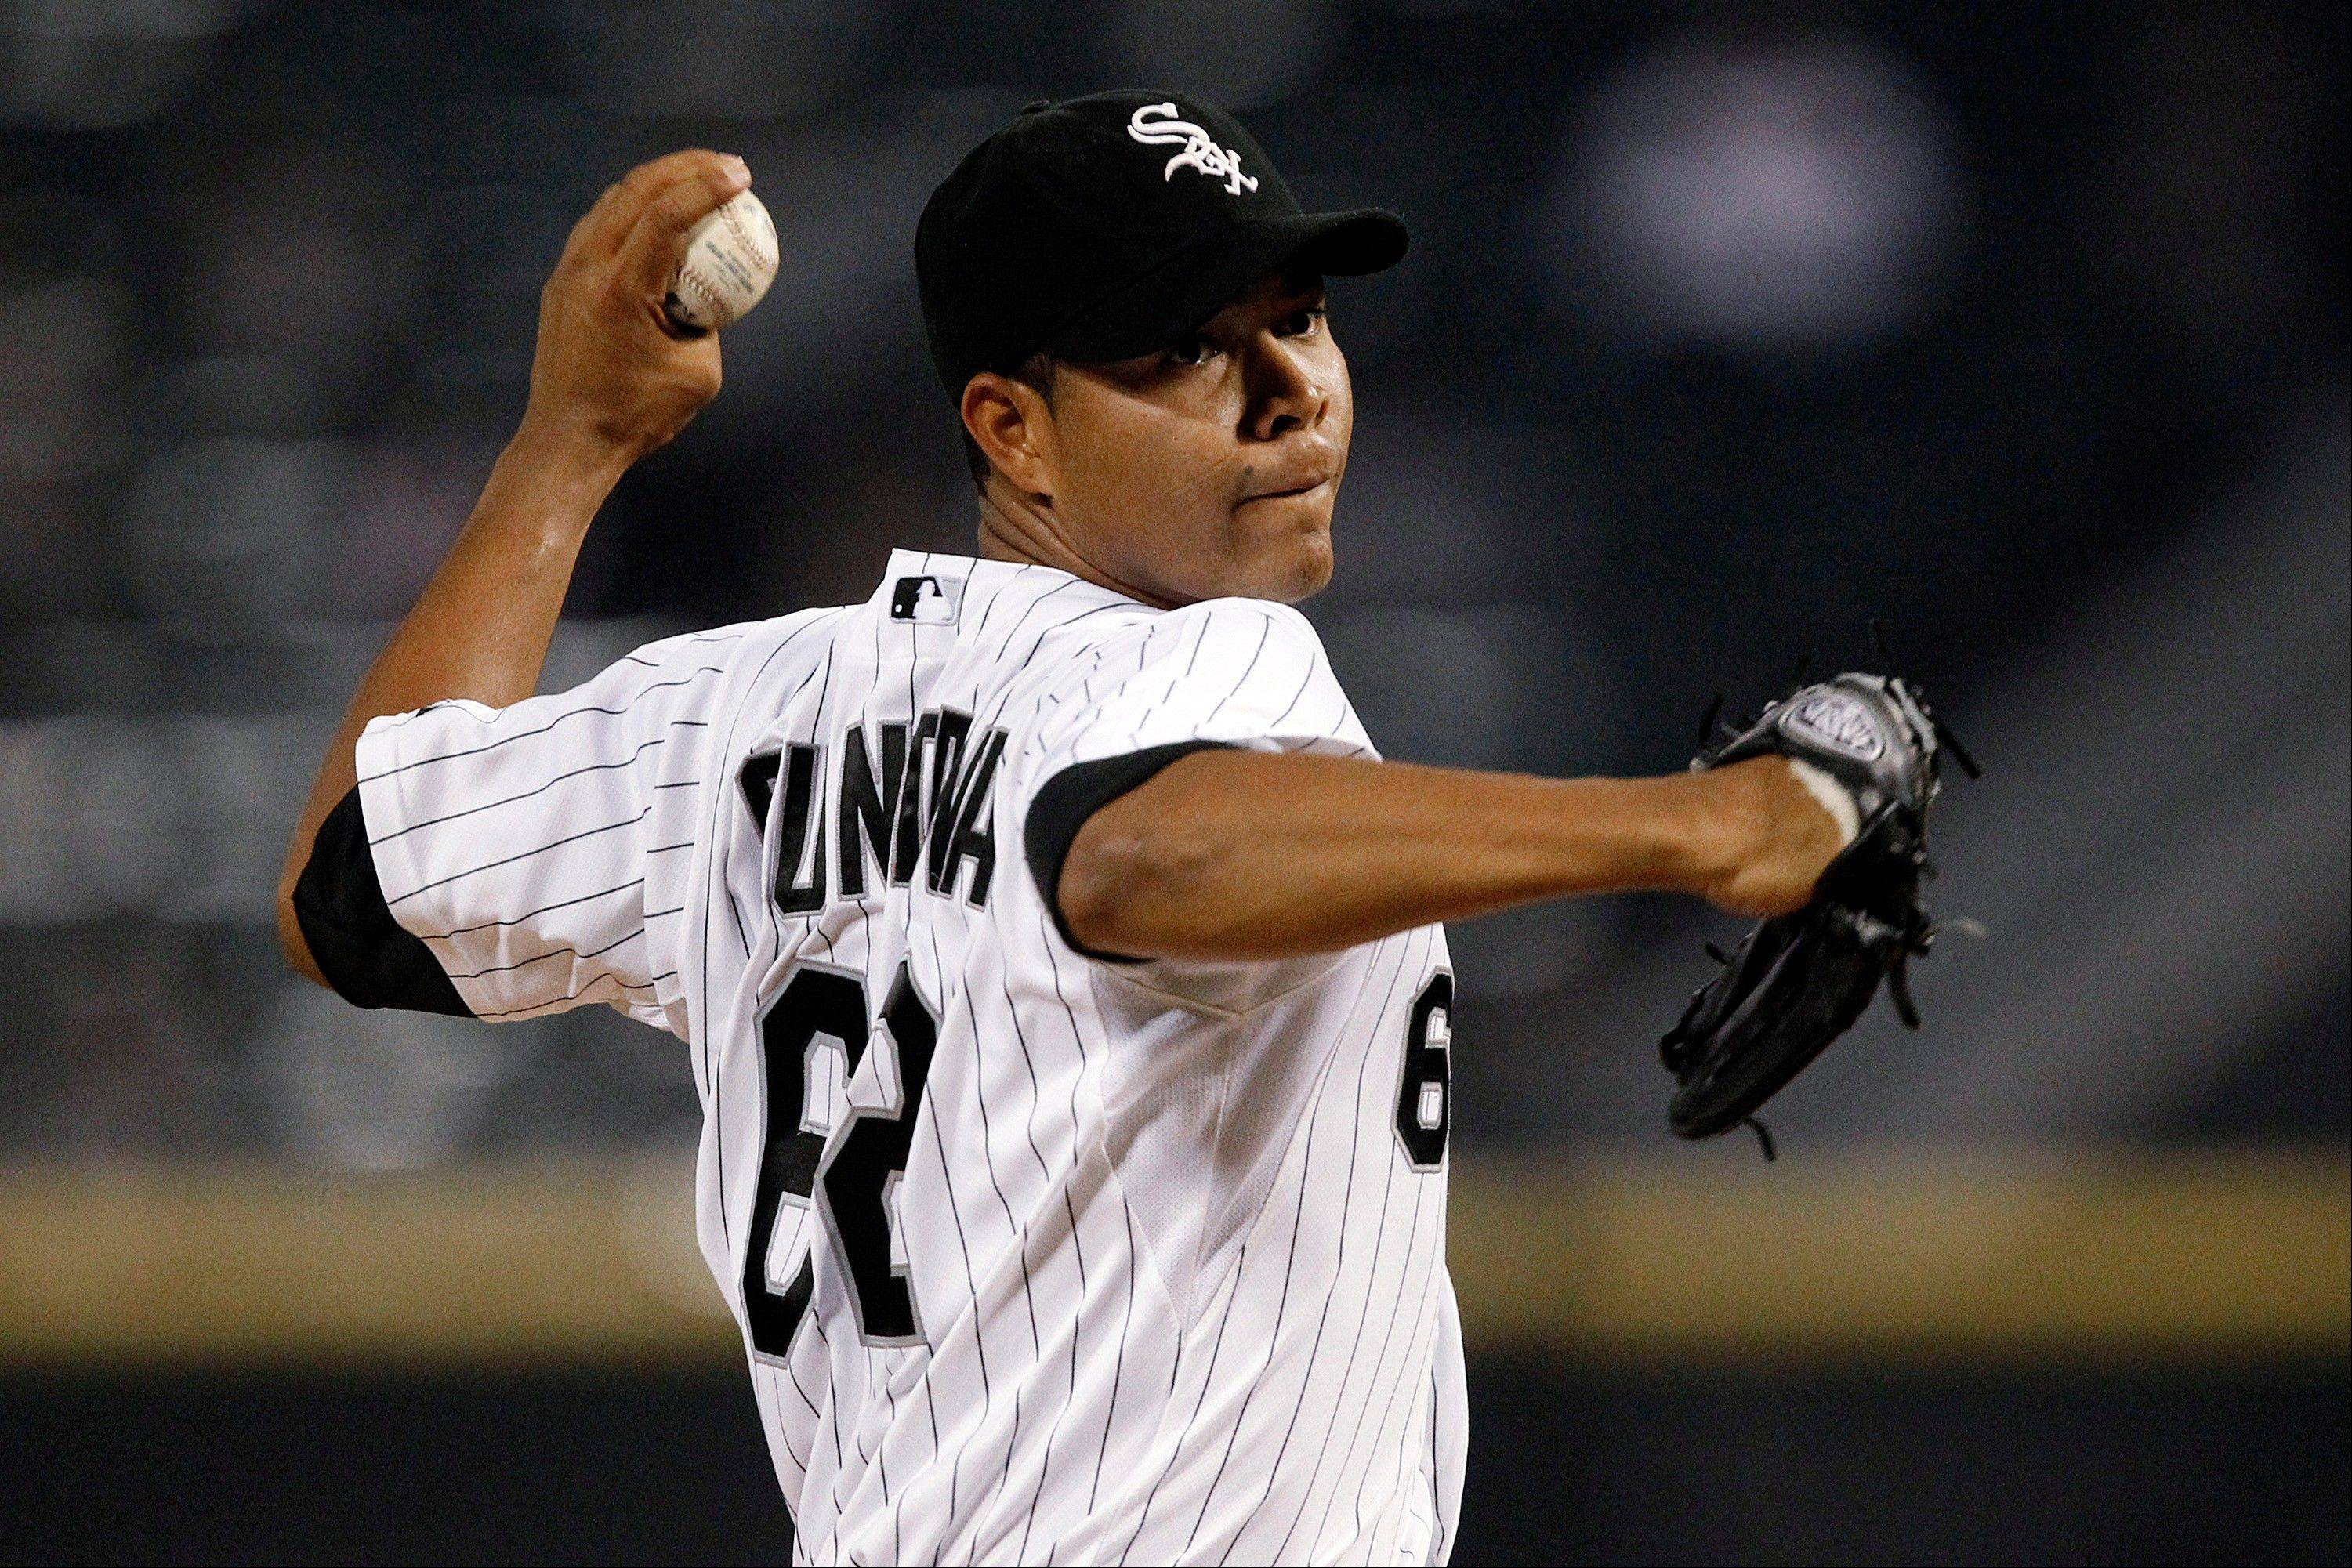 White Sox starting pitcher Jose Quintana improved to 8-6 with Tuesday night�s victory over the Twins.